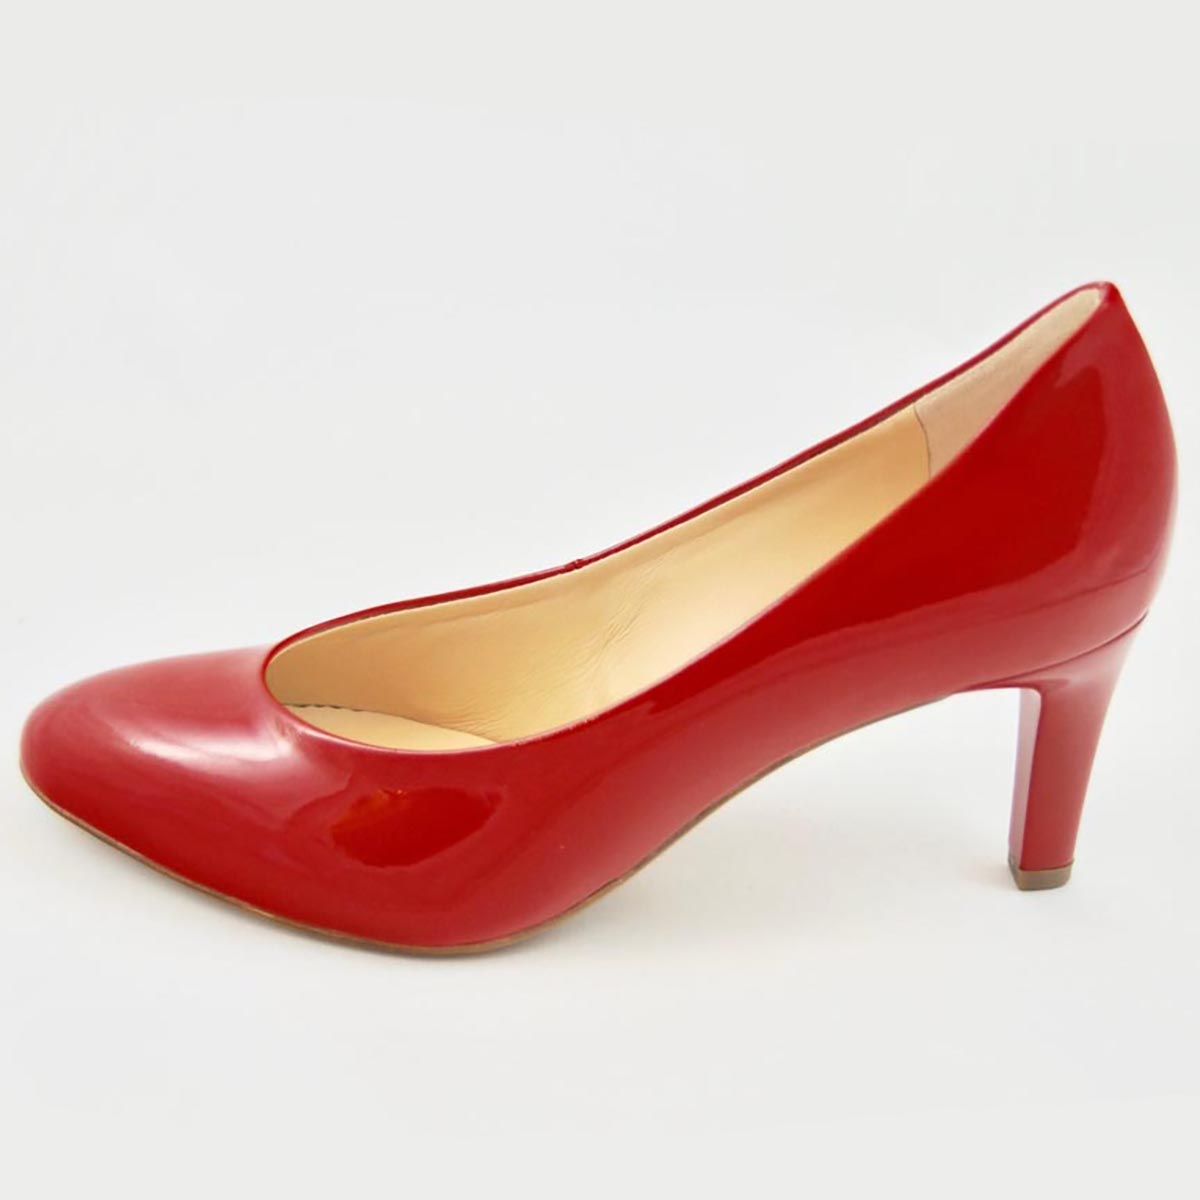 Hogl - Sass Red Patent Court Shoe